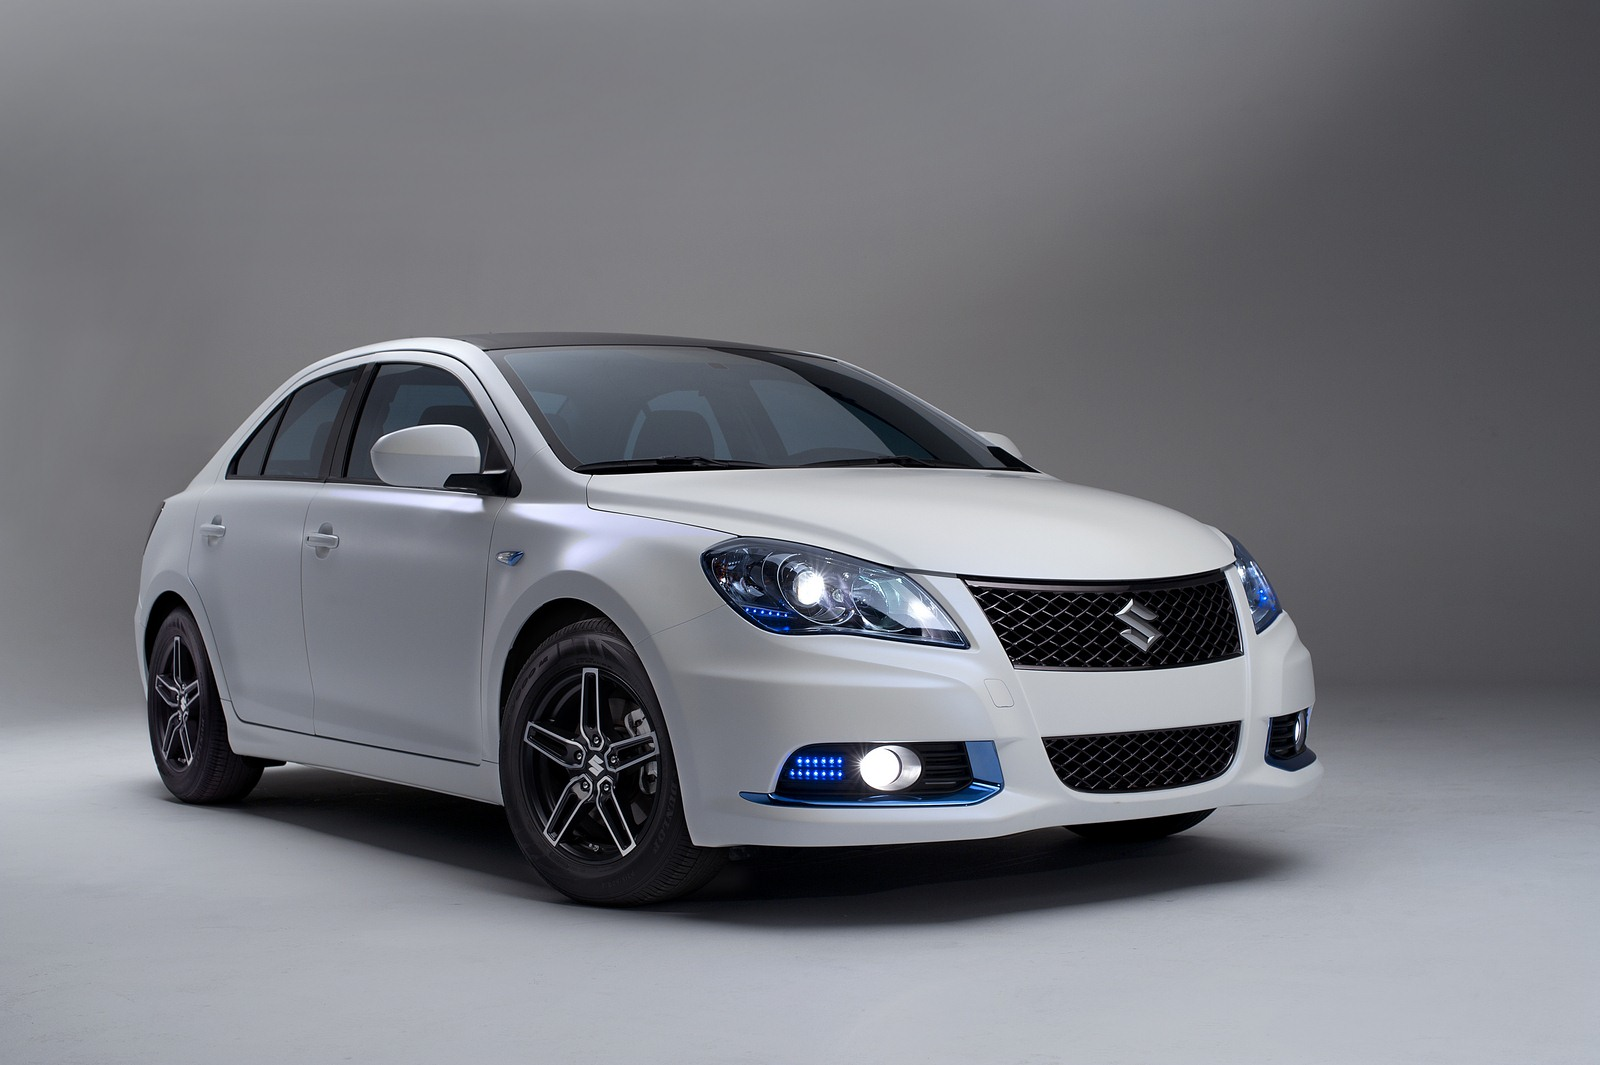 2018 Suzuki Kizashi Apex Concept photo - 4